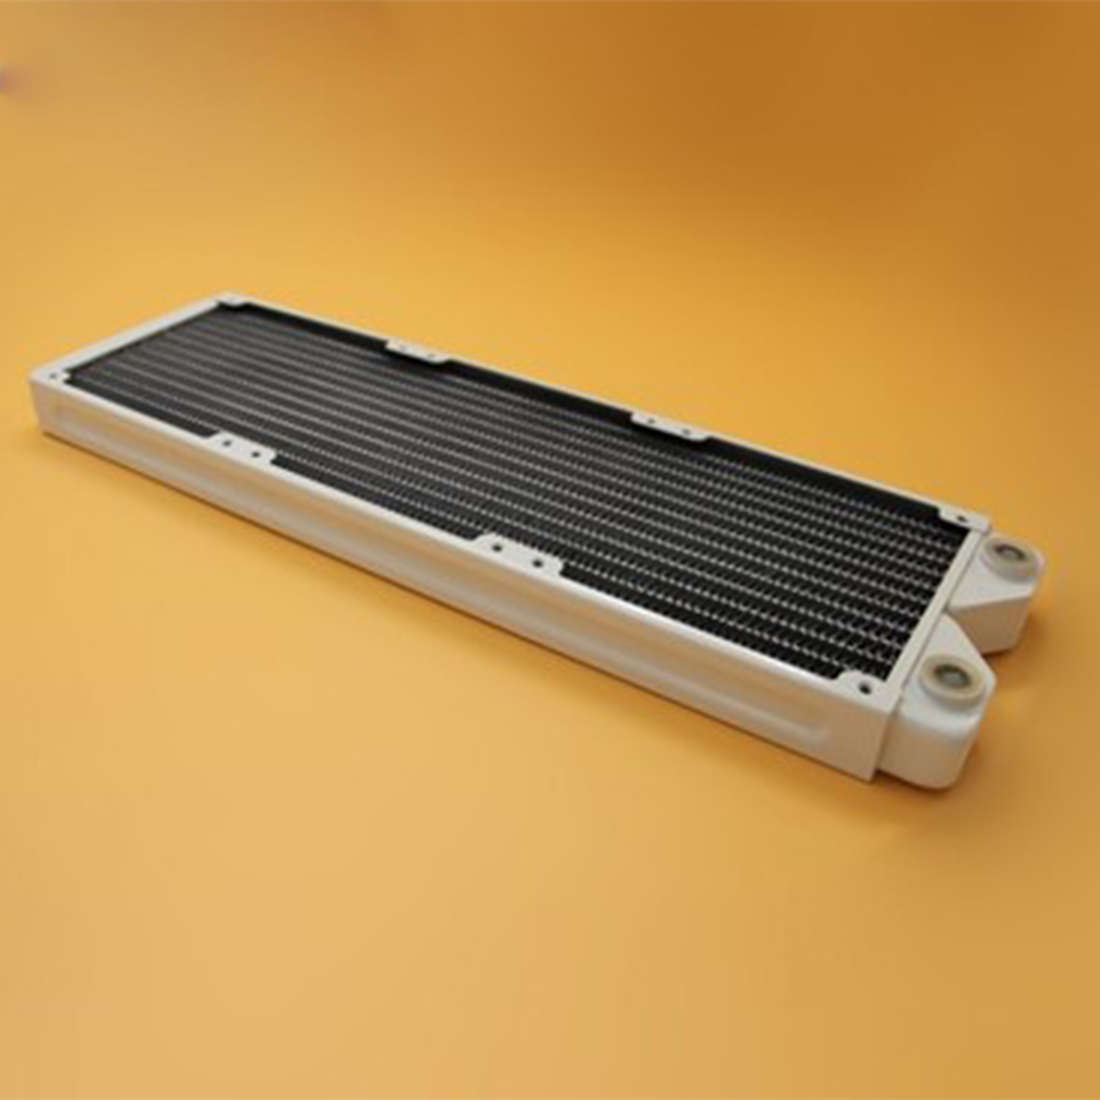 393 X 120 X 27mm/273 X 120 X 27mm/153 X 120 X 27mm Pure Copper Heat Exchanger Radiator For Computer Brain-Training Toy For Child